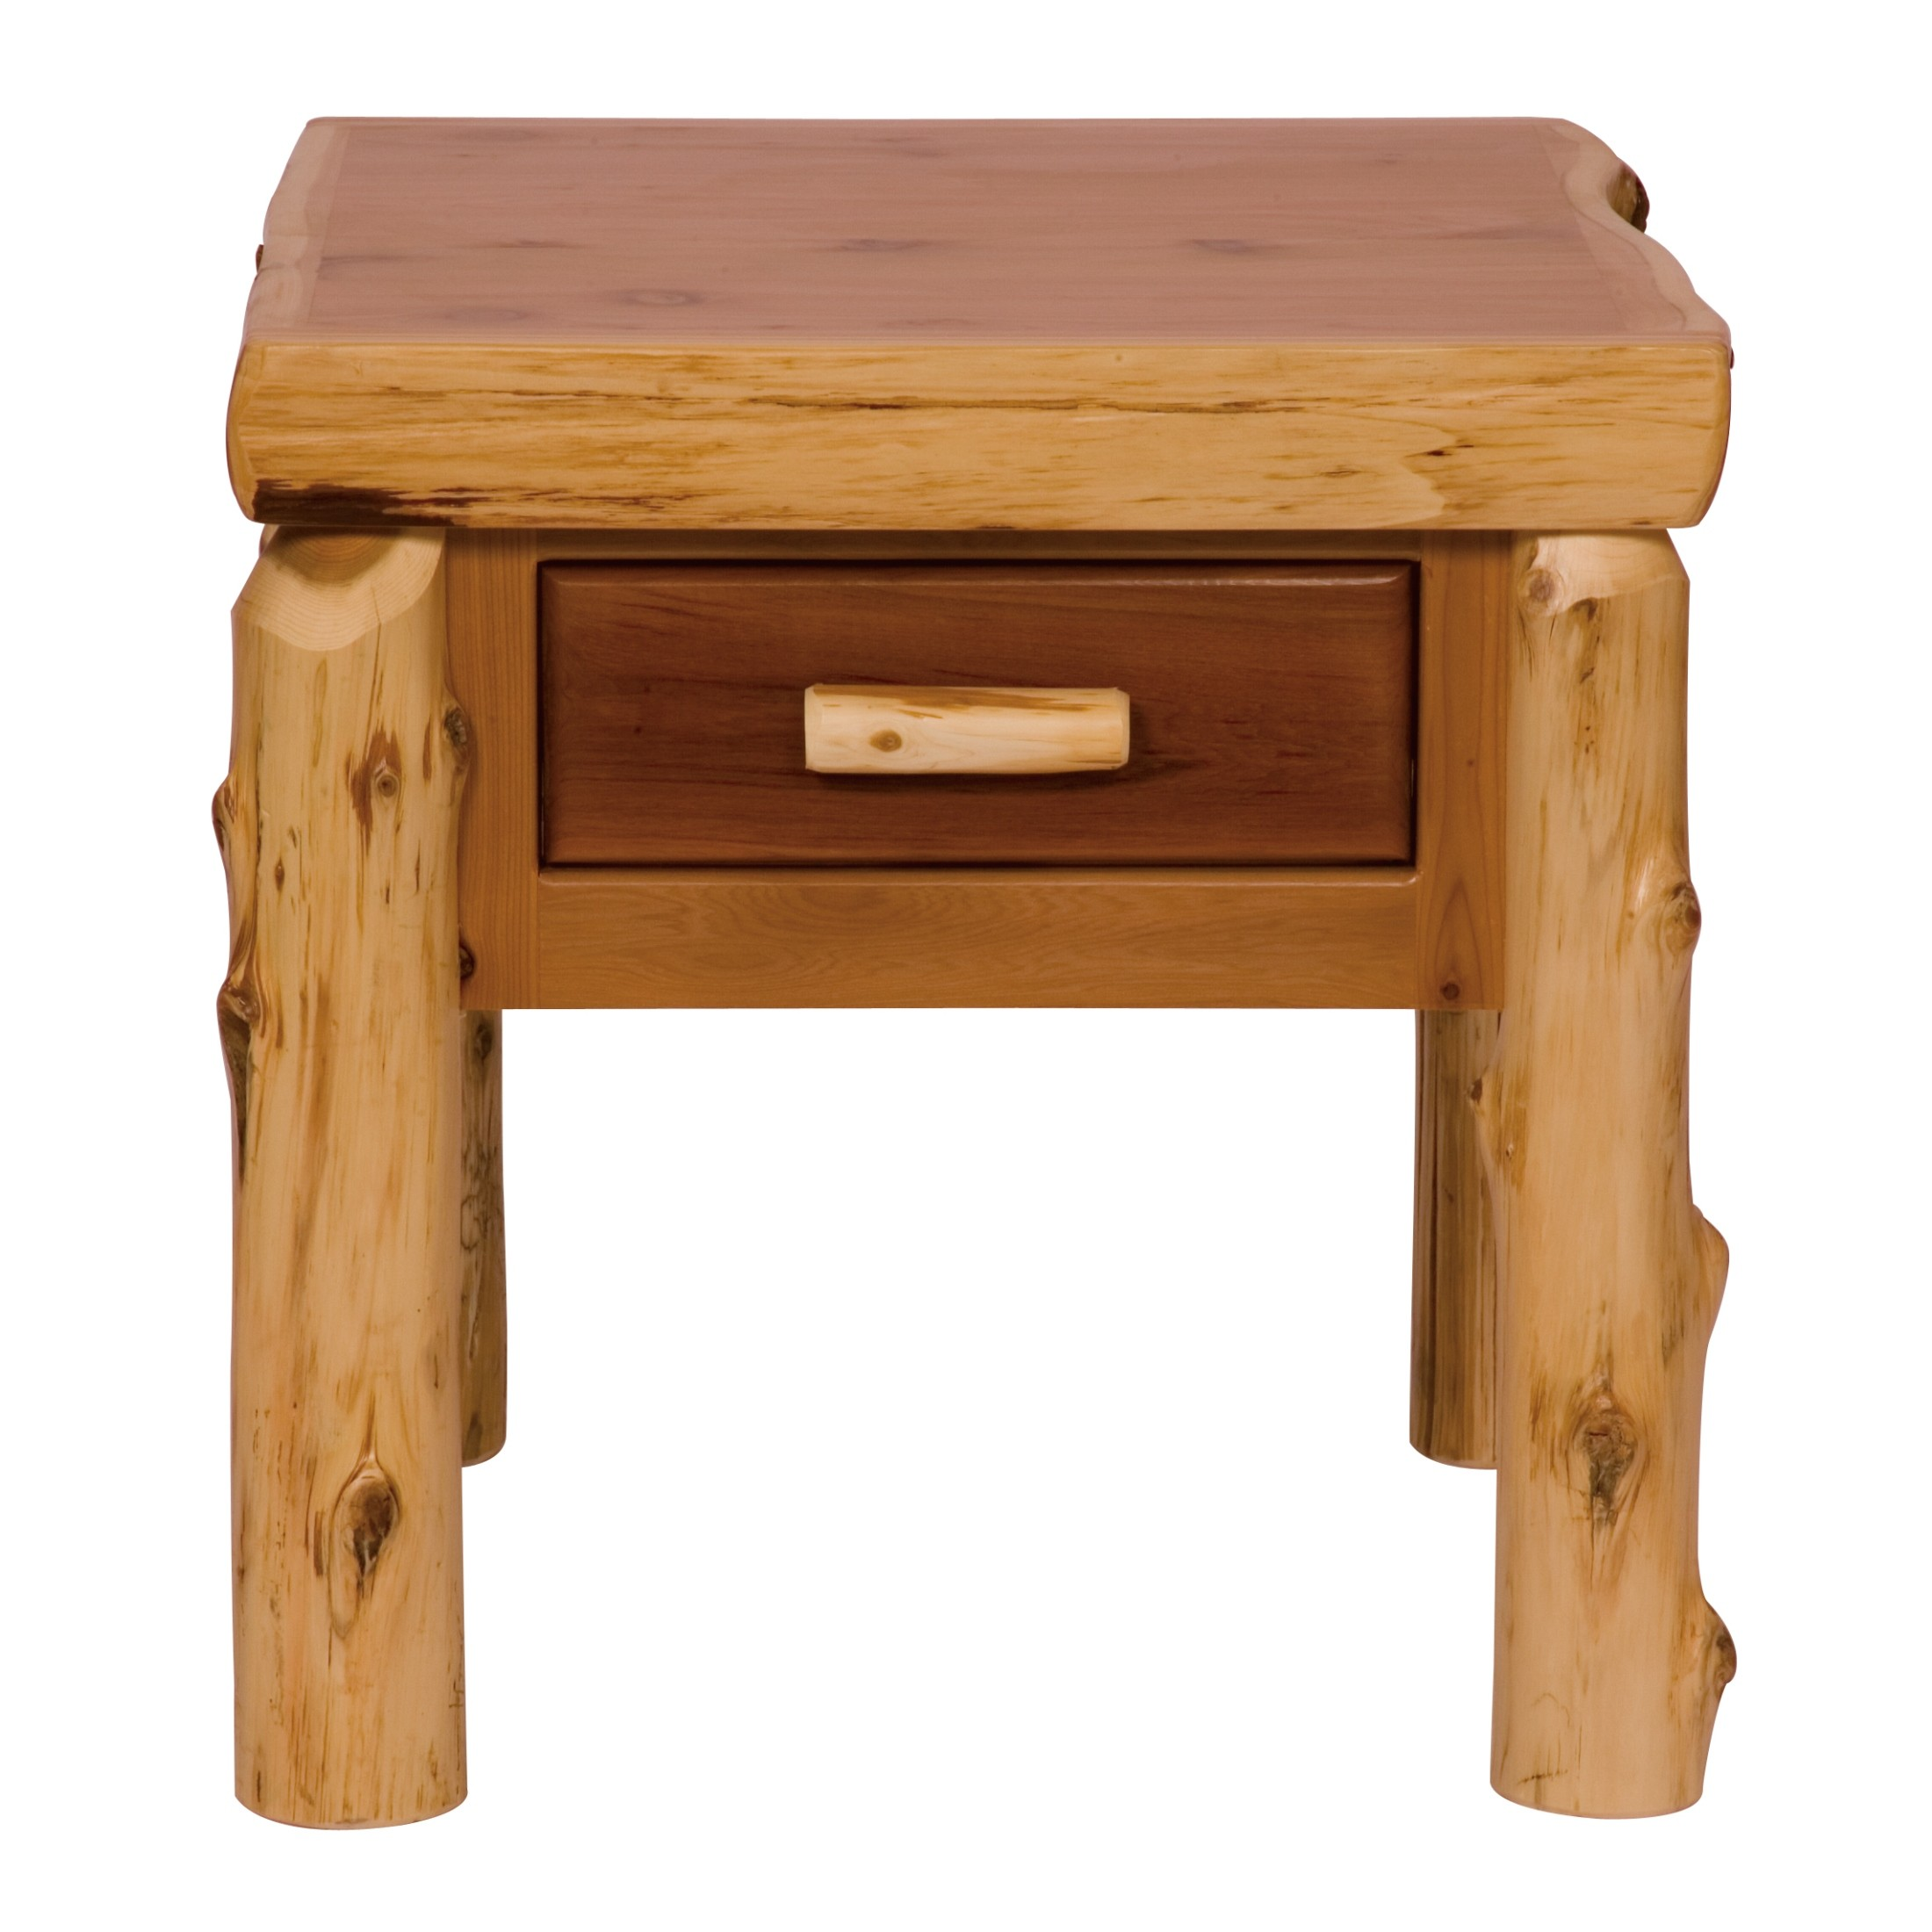 Cedar one drawer end table from fireside lodge 14021 for 1 drawer table